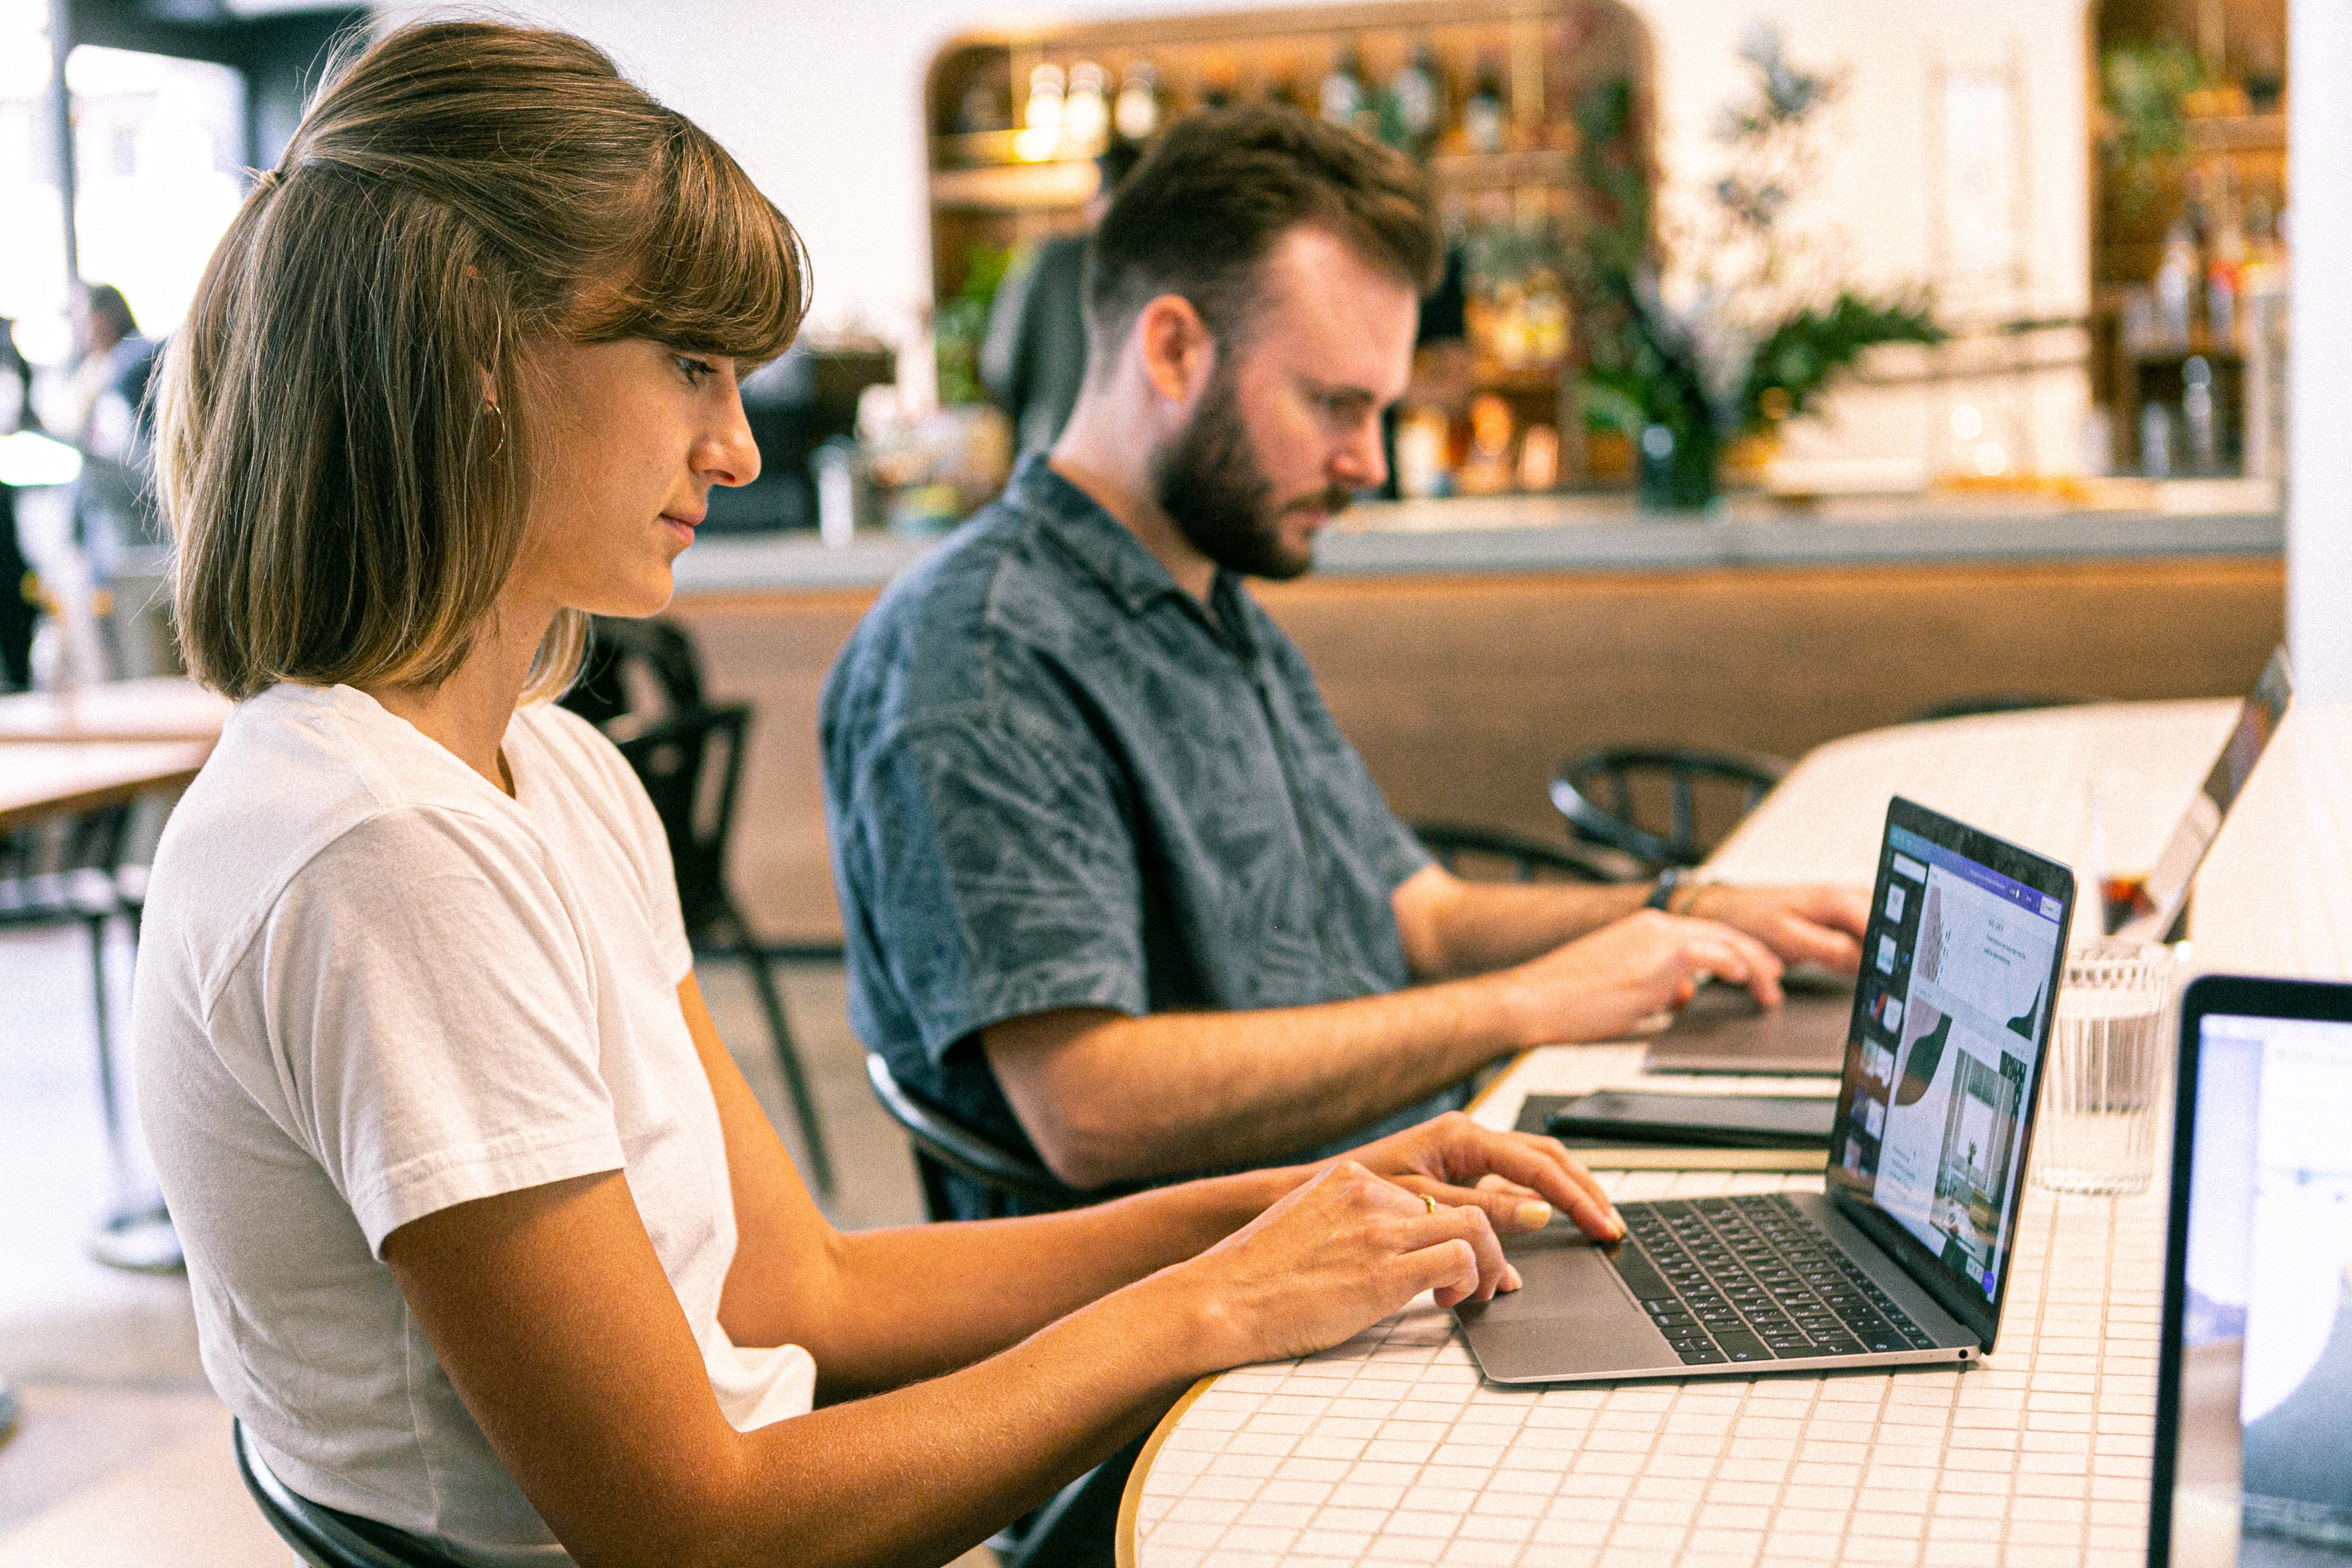 Reasons Why Introverts Will Benefit From Coworking Spaces